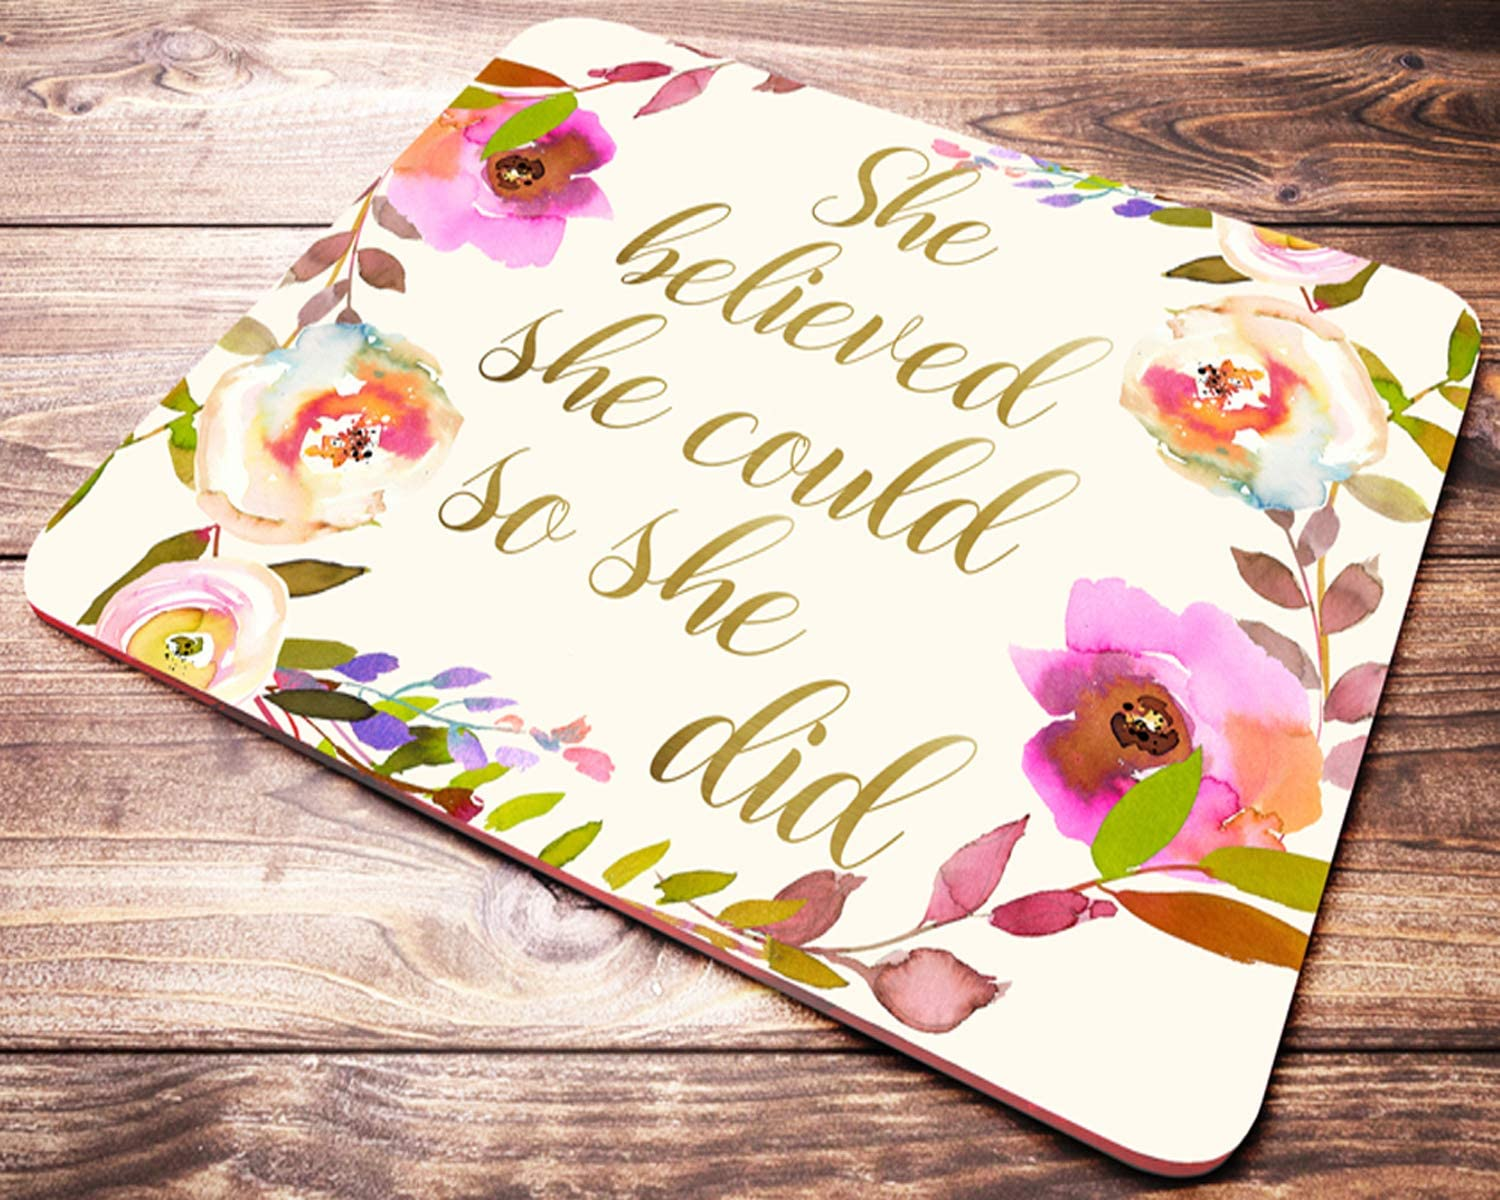 Quote Mouse Tulsa Mall Pad Max 56% OFF She Believed Flo Could So Watercolor Did